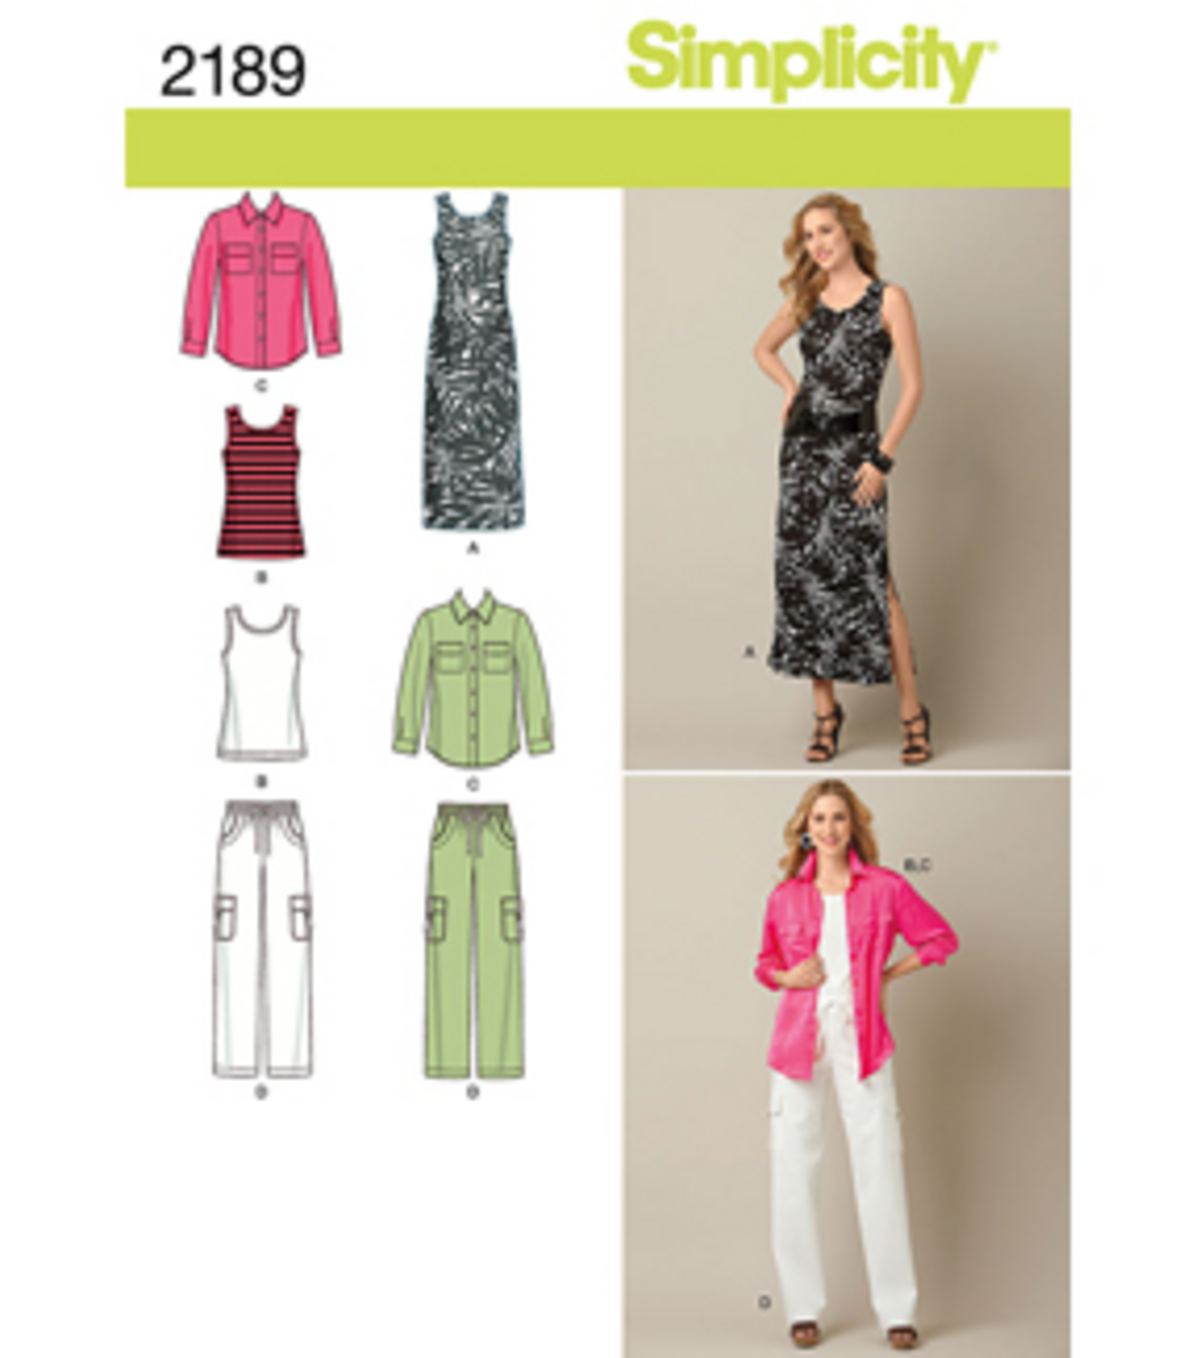 Simplicity Pattern 2189BB 20W-28W -Simplicity Misses